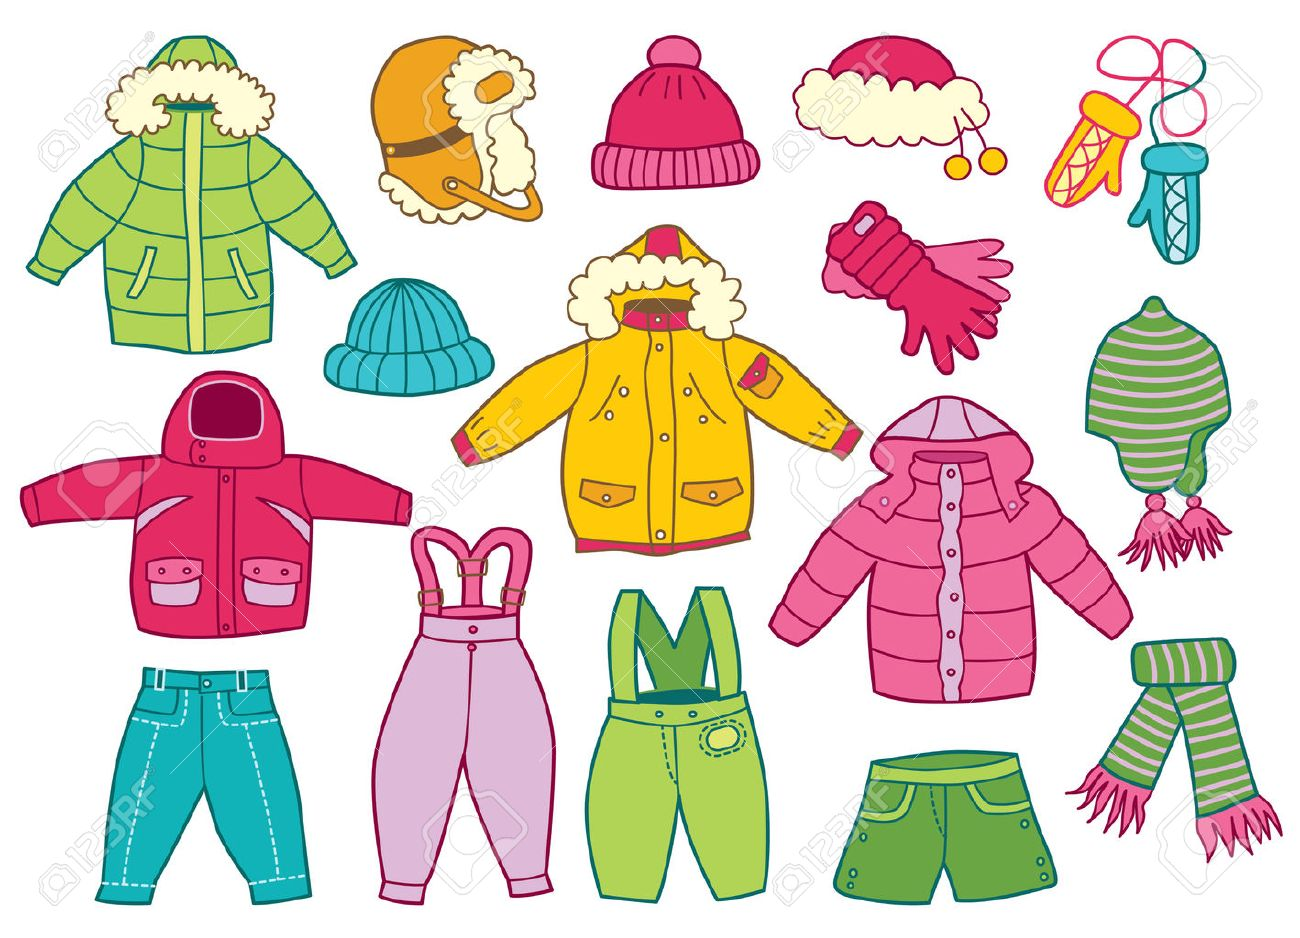 Winter clothes clipart 7 » Clipart Station.